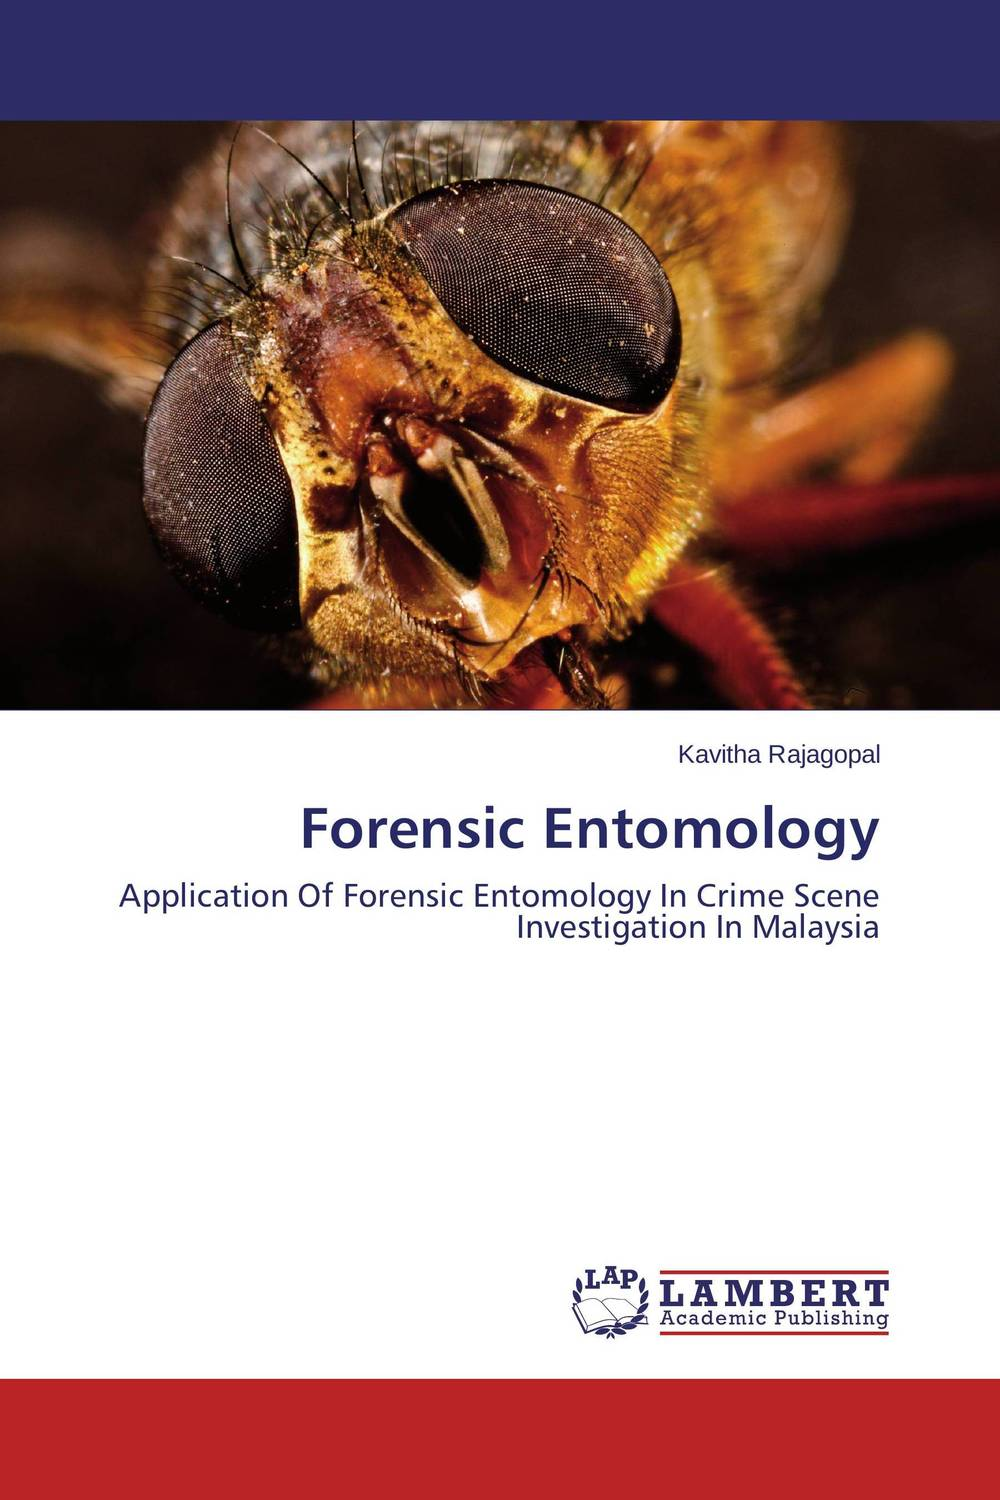 Forensic Entomology karanprakash singh ramanpreet kaur bhullar and sumit kochhar forensic dentistry teeth and their secrets